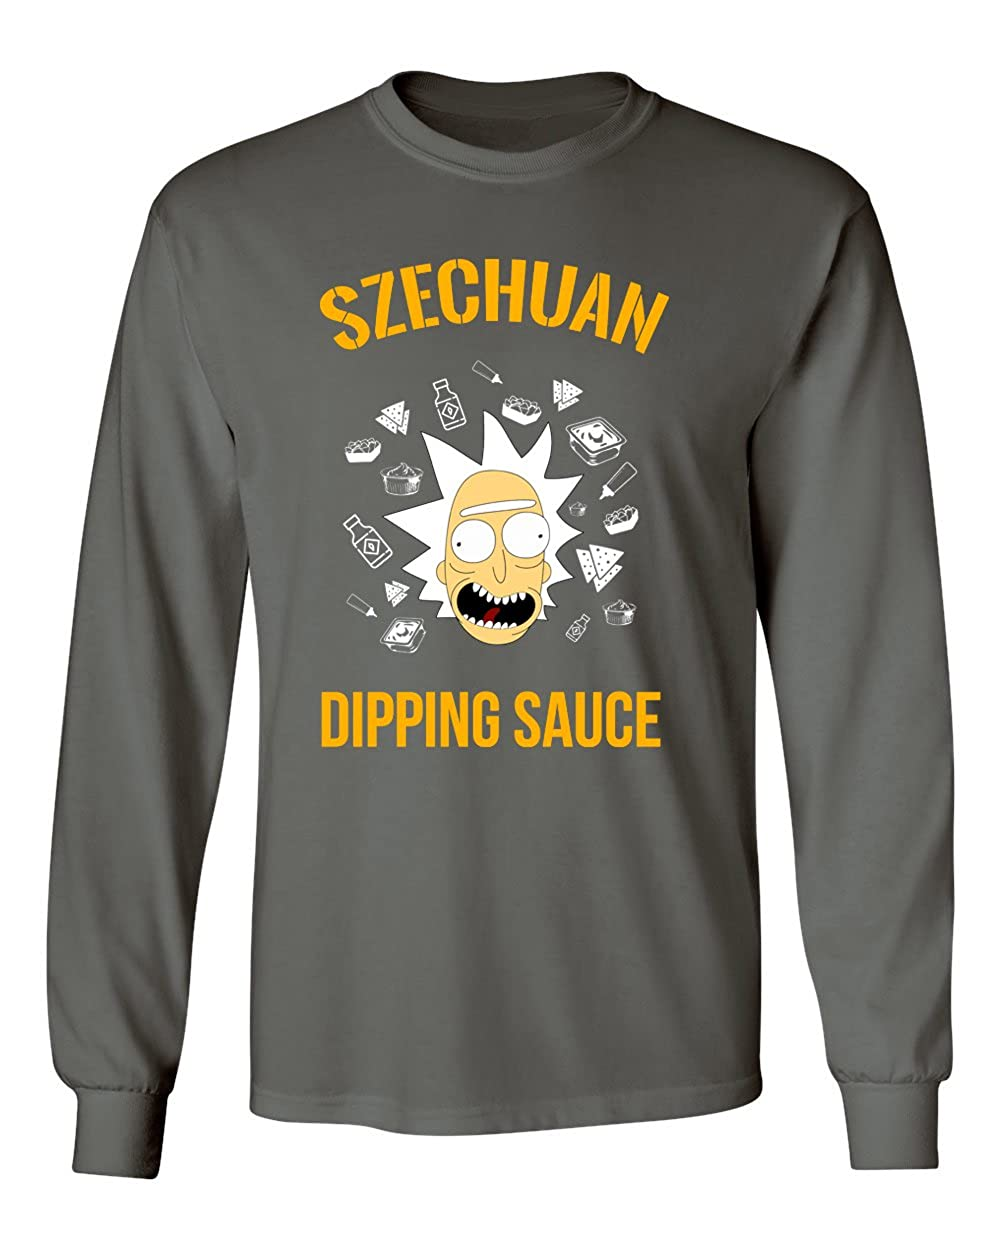 Ricky /& Morty Szechuan Dipping Sauce Funny Mens Hoodie Hooded Sweatshirt